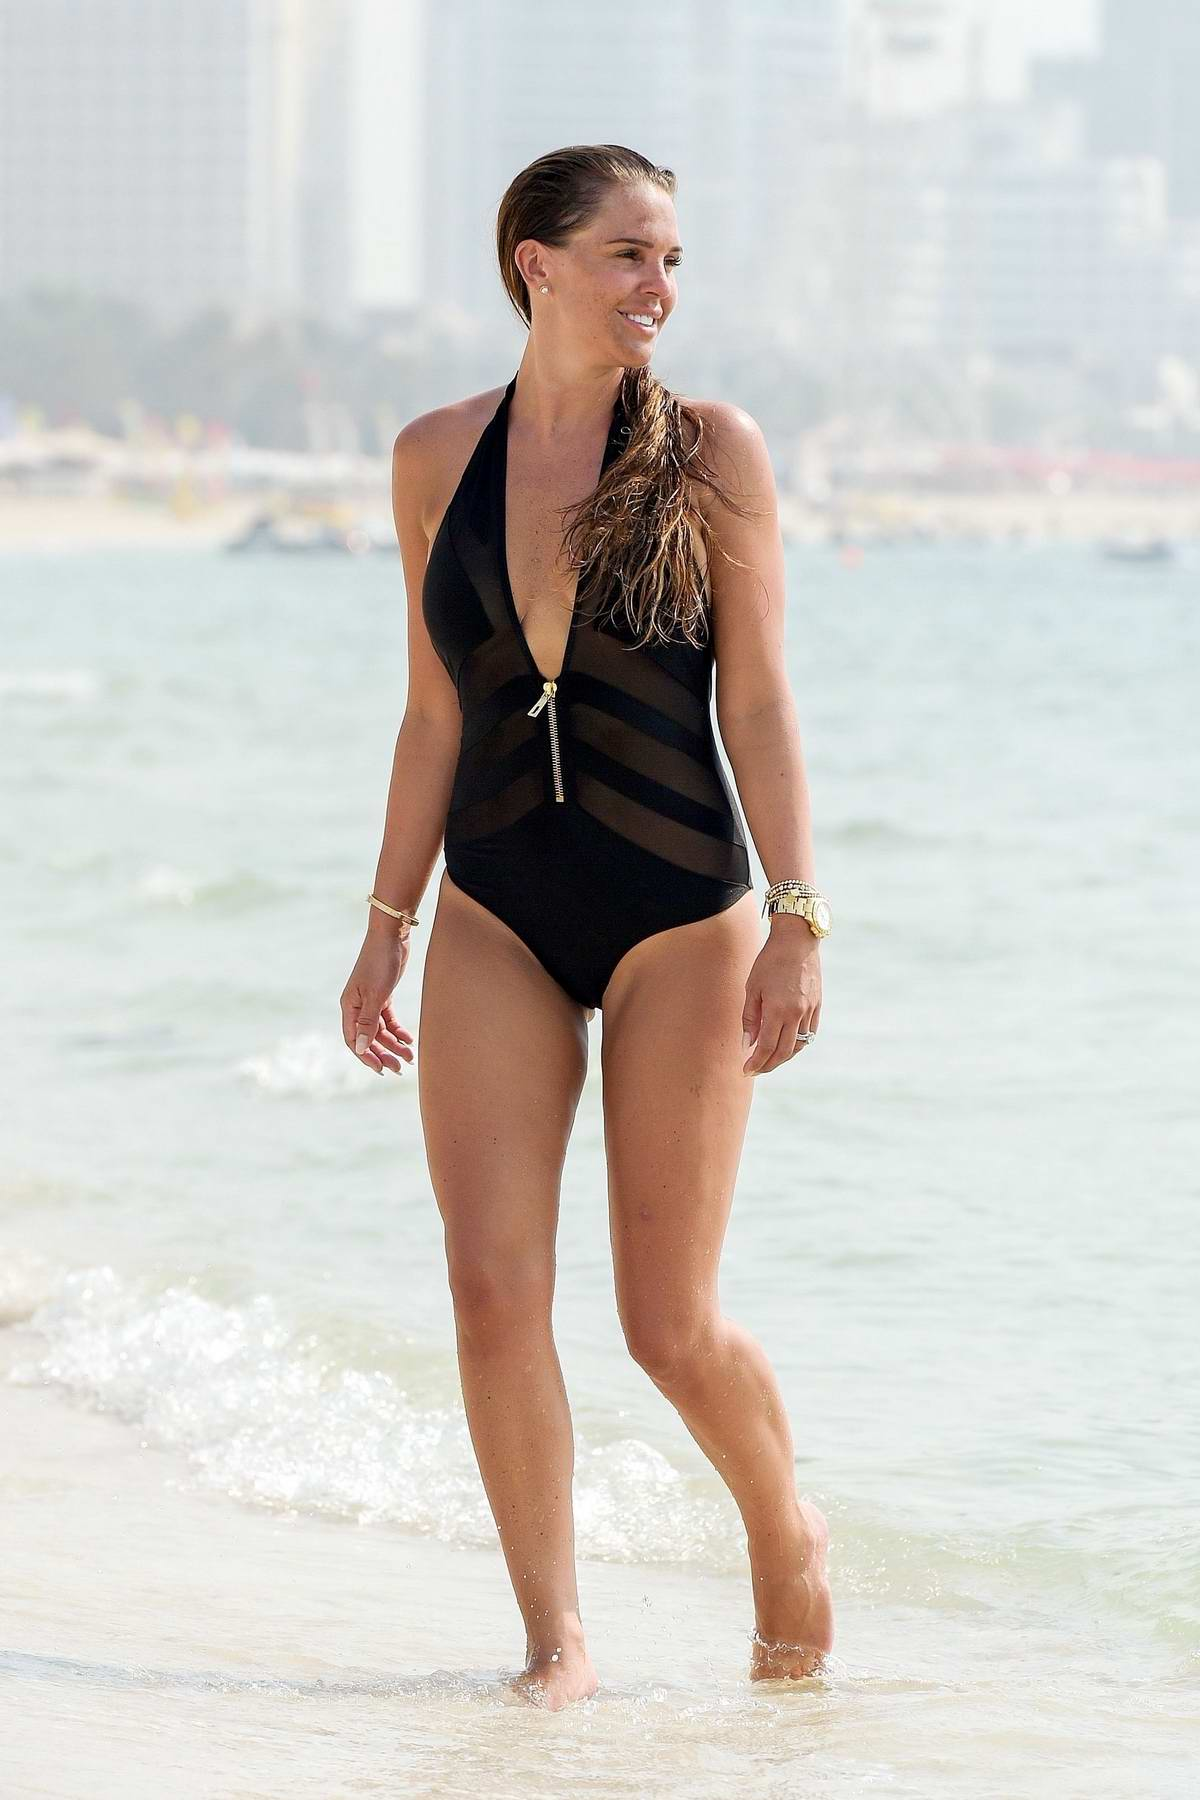 Danielle Lloyd hits the beach in black swimsuit during her holidays in Dubai